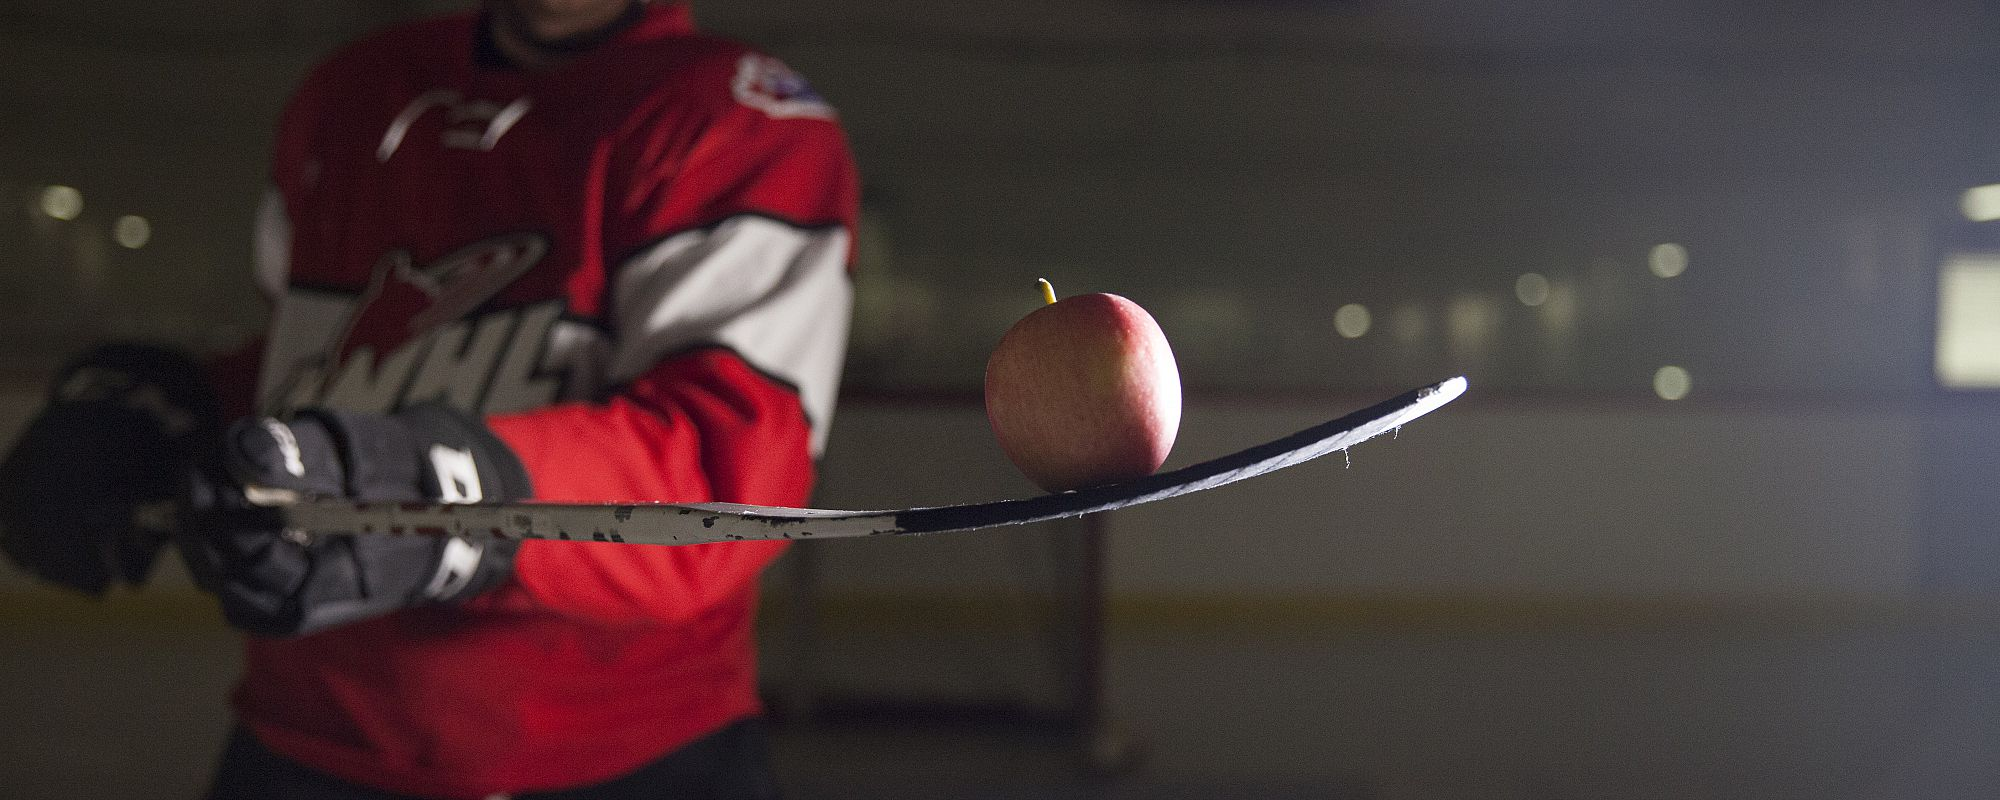 WHL & BC Tree Fruits Announce BC Tree Fruits Training Day contest for minor hockey teams